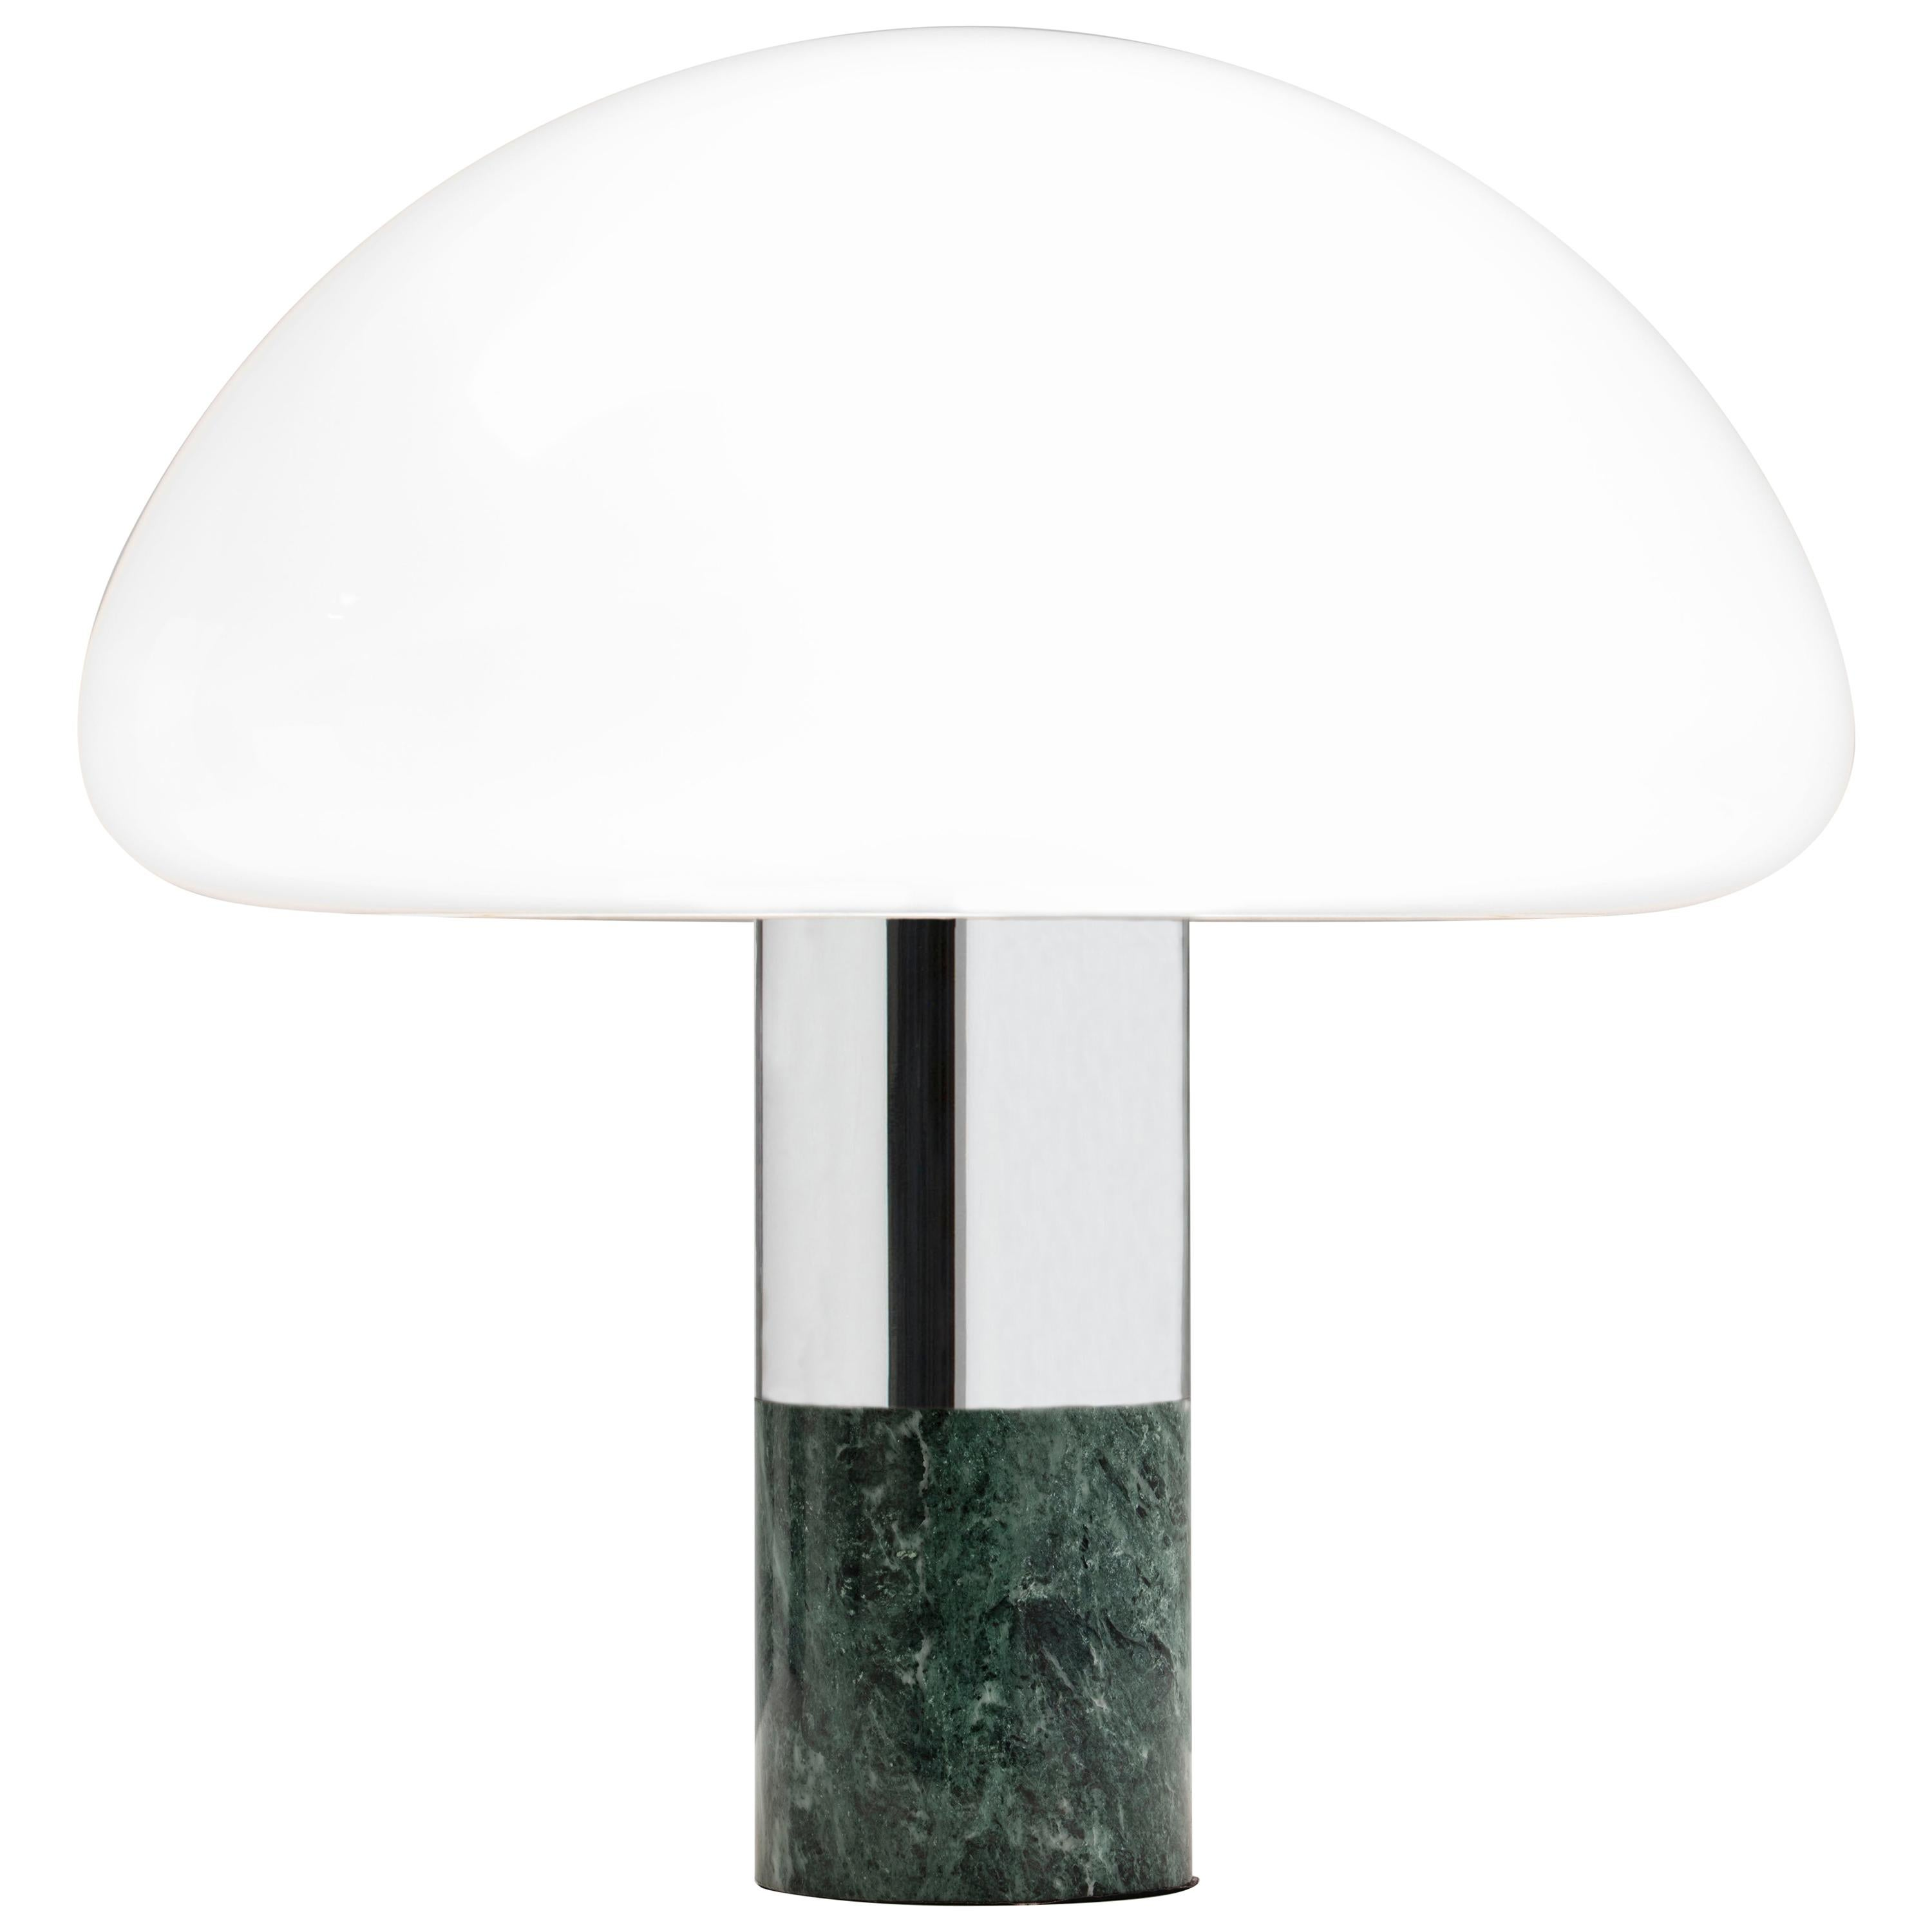 21st Century Created by William Pianta Table Desk Lamp K&W Murano Glass Marble